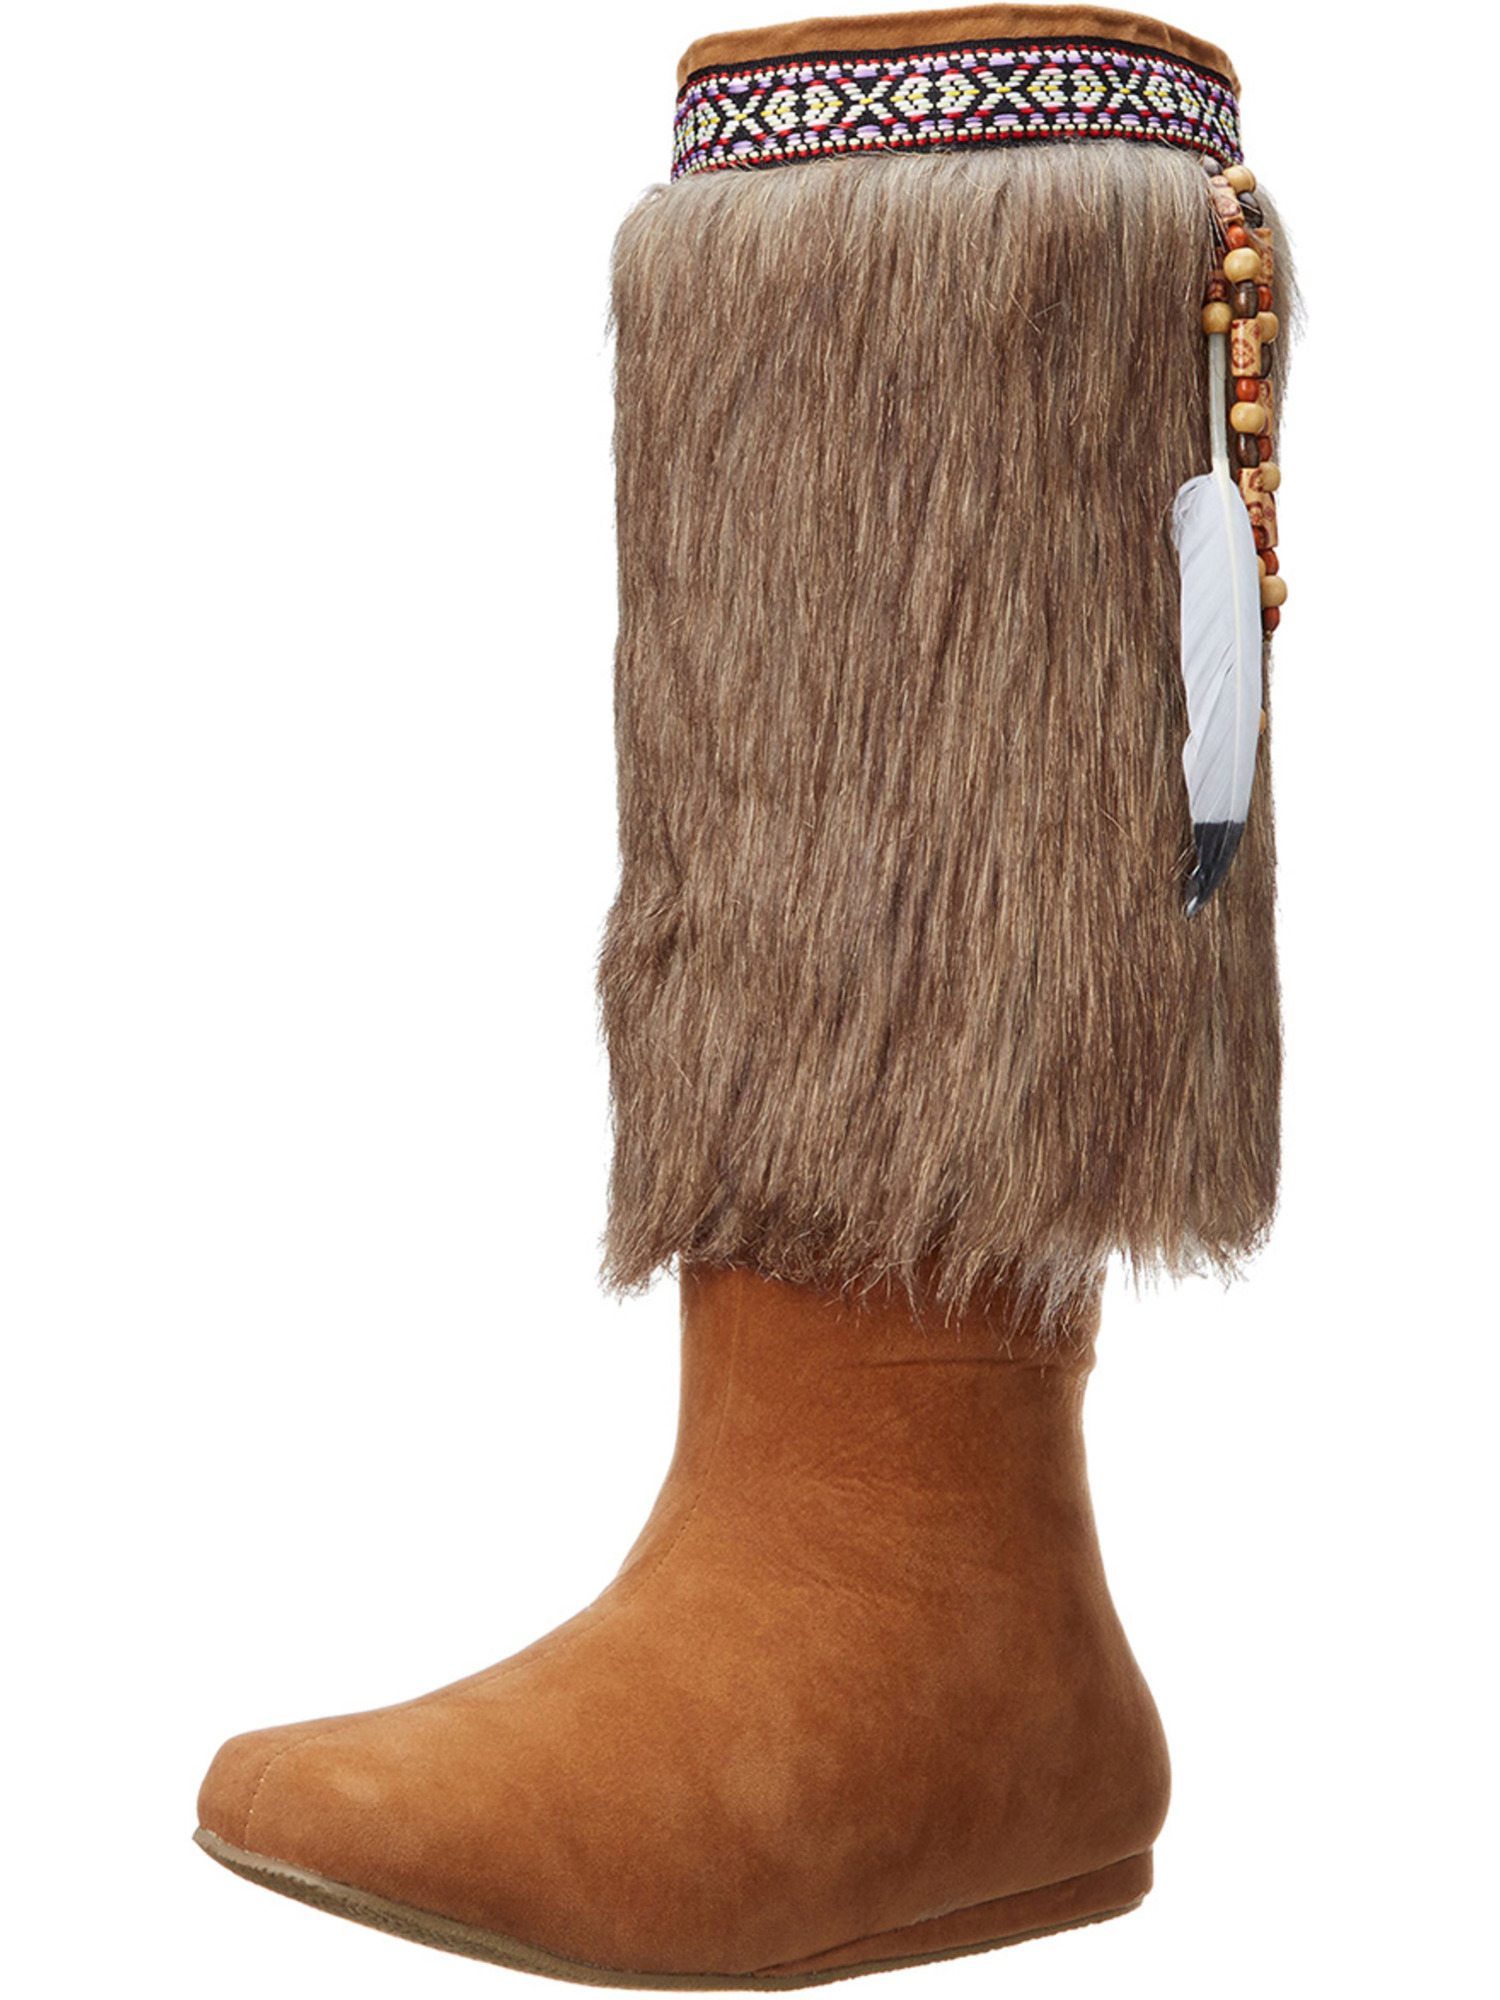 Womens Faux Fur Boots Tan Indian Tribal Boots Knee High Feathers 1 Inch Heels